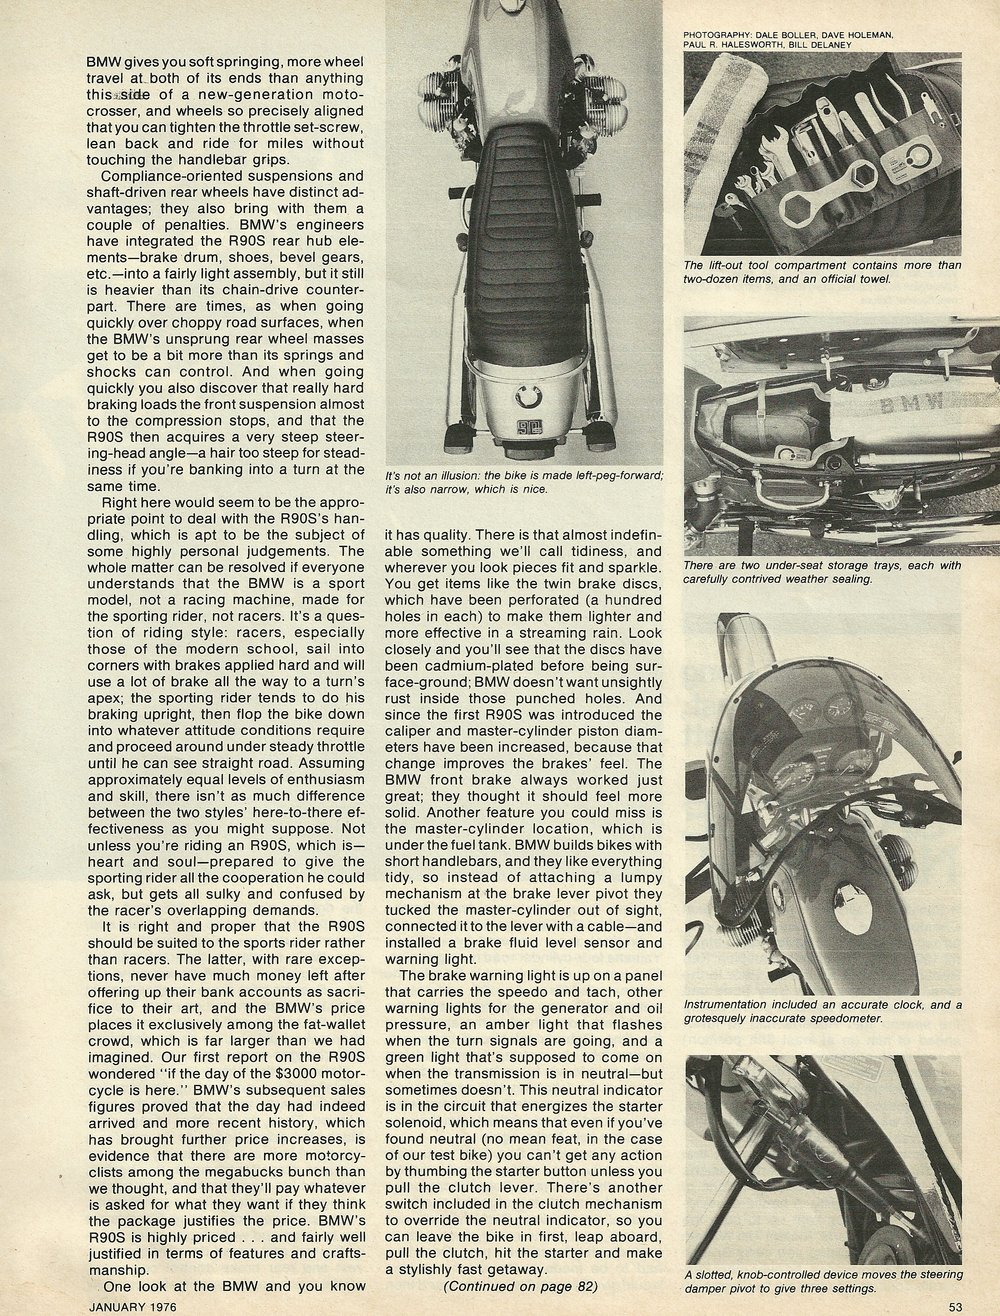 1976 BMW R90S road test 6.JPG